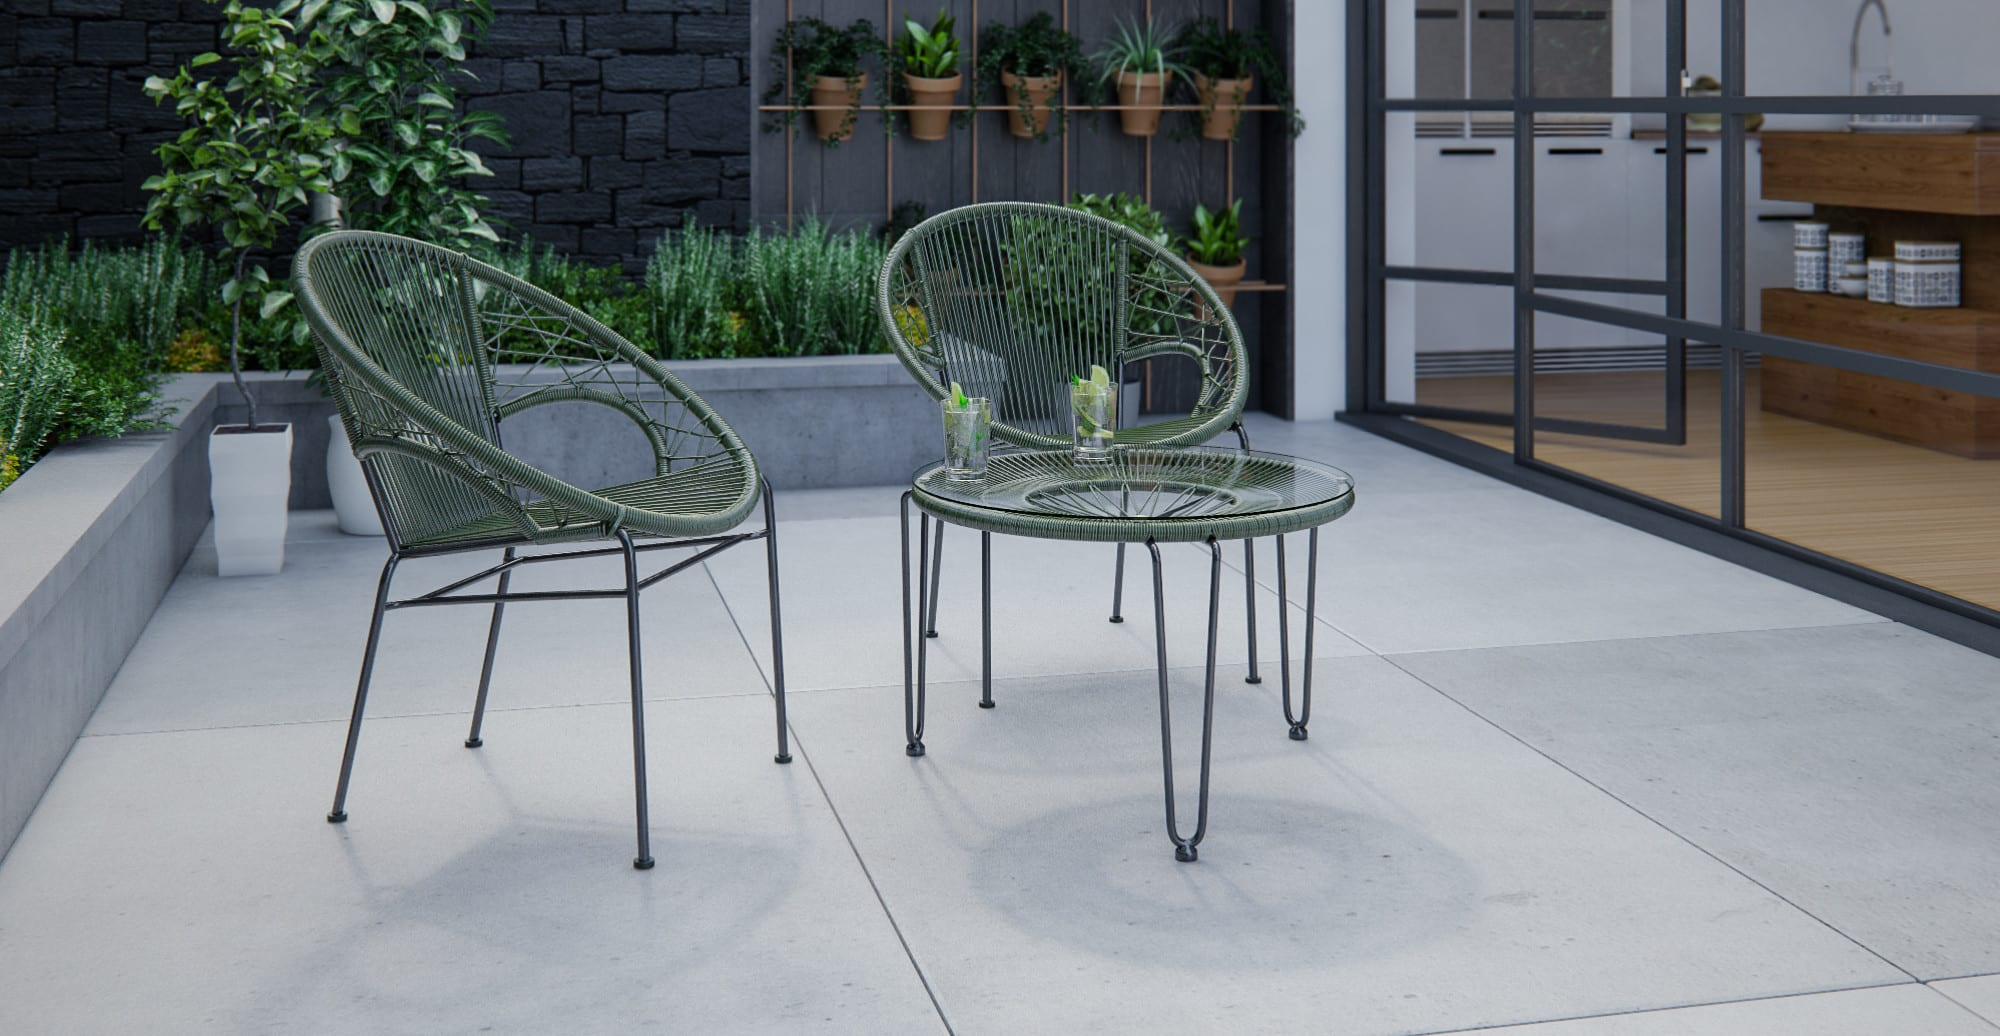 Small Outdoor Setting Part - 18: Small Majorca U0026 Muro 3 Piece Outdoor Setting - 2x Accent Chairs With Coffee  Table , Dark Green Change